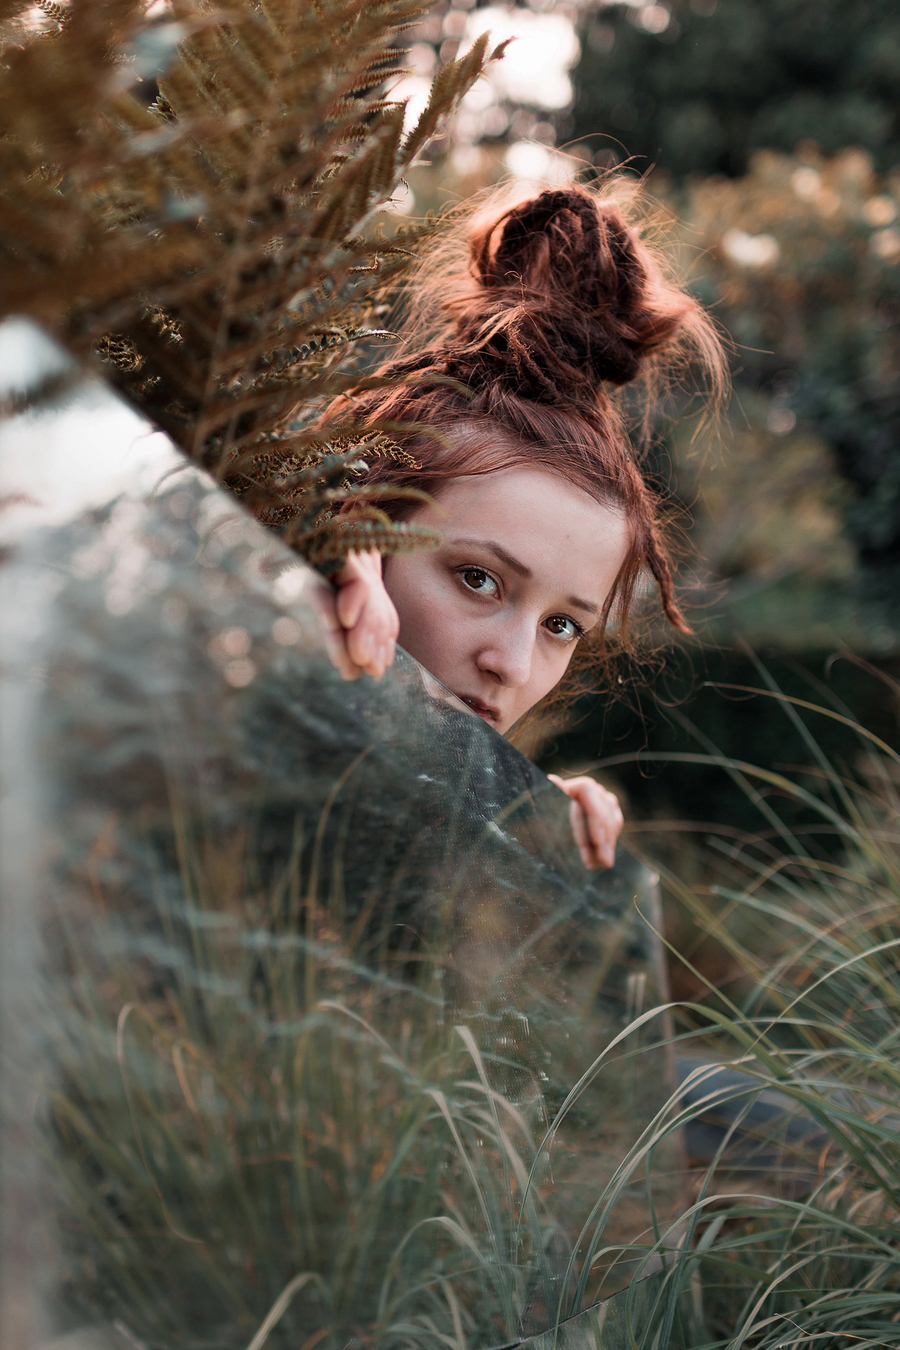 Hide behind another reality / Photography by Balazs Toro, Model Stephanie Pearl Model / Uploaded 22nd September 2019 @ 08:56 AM